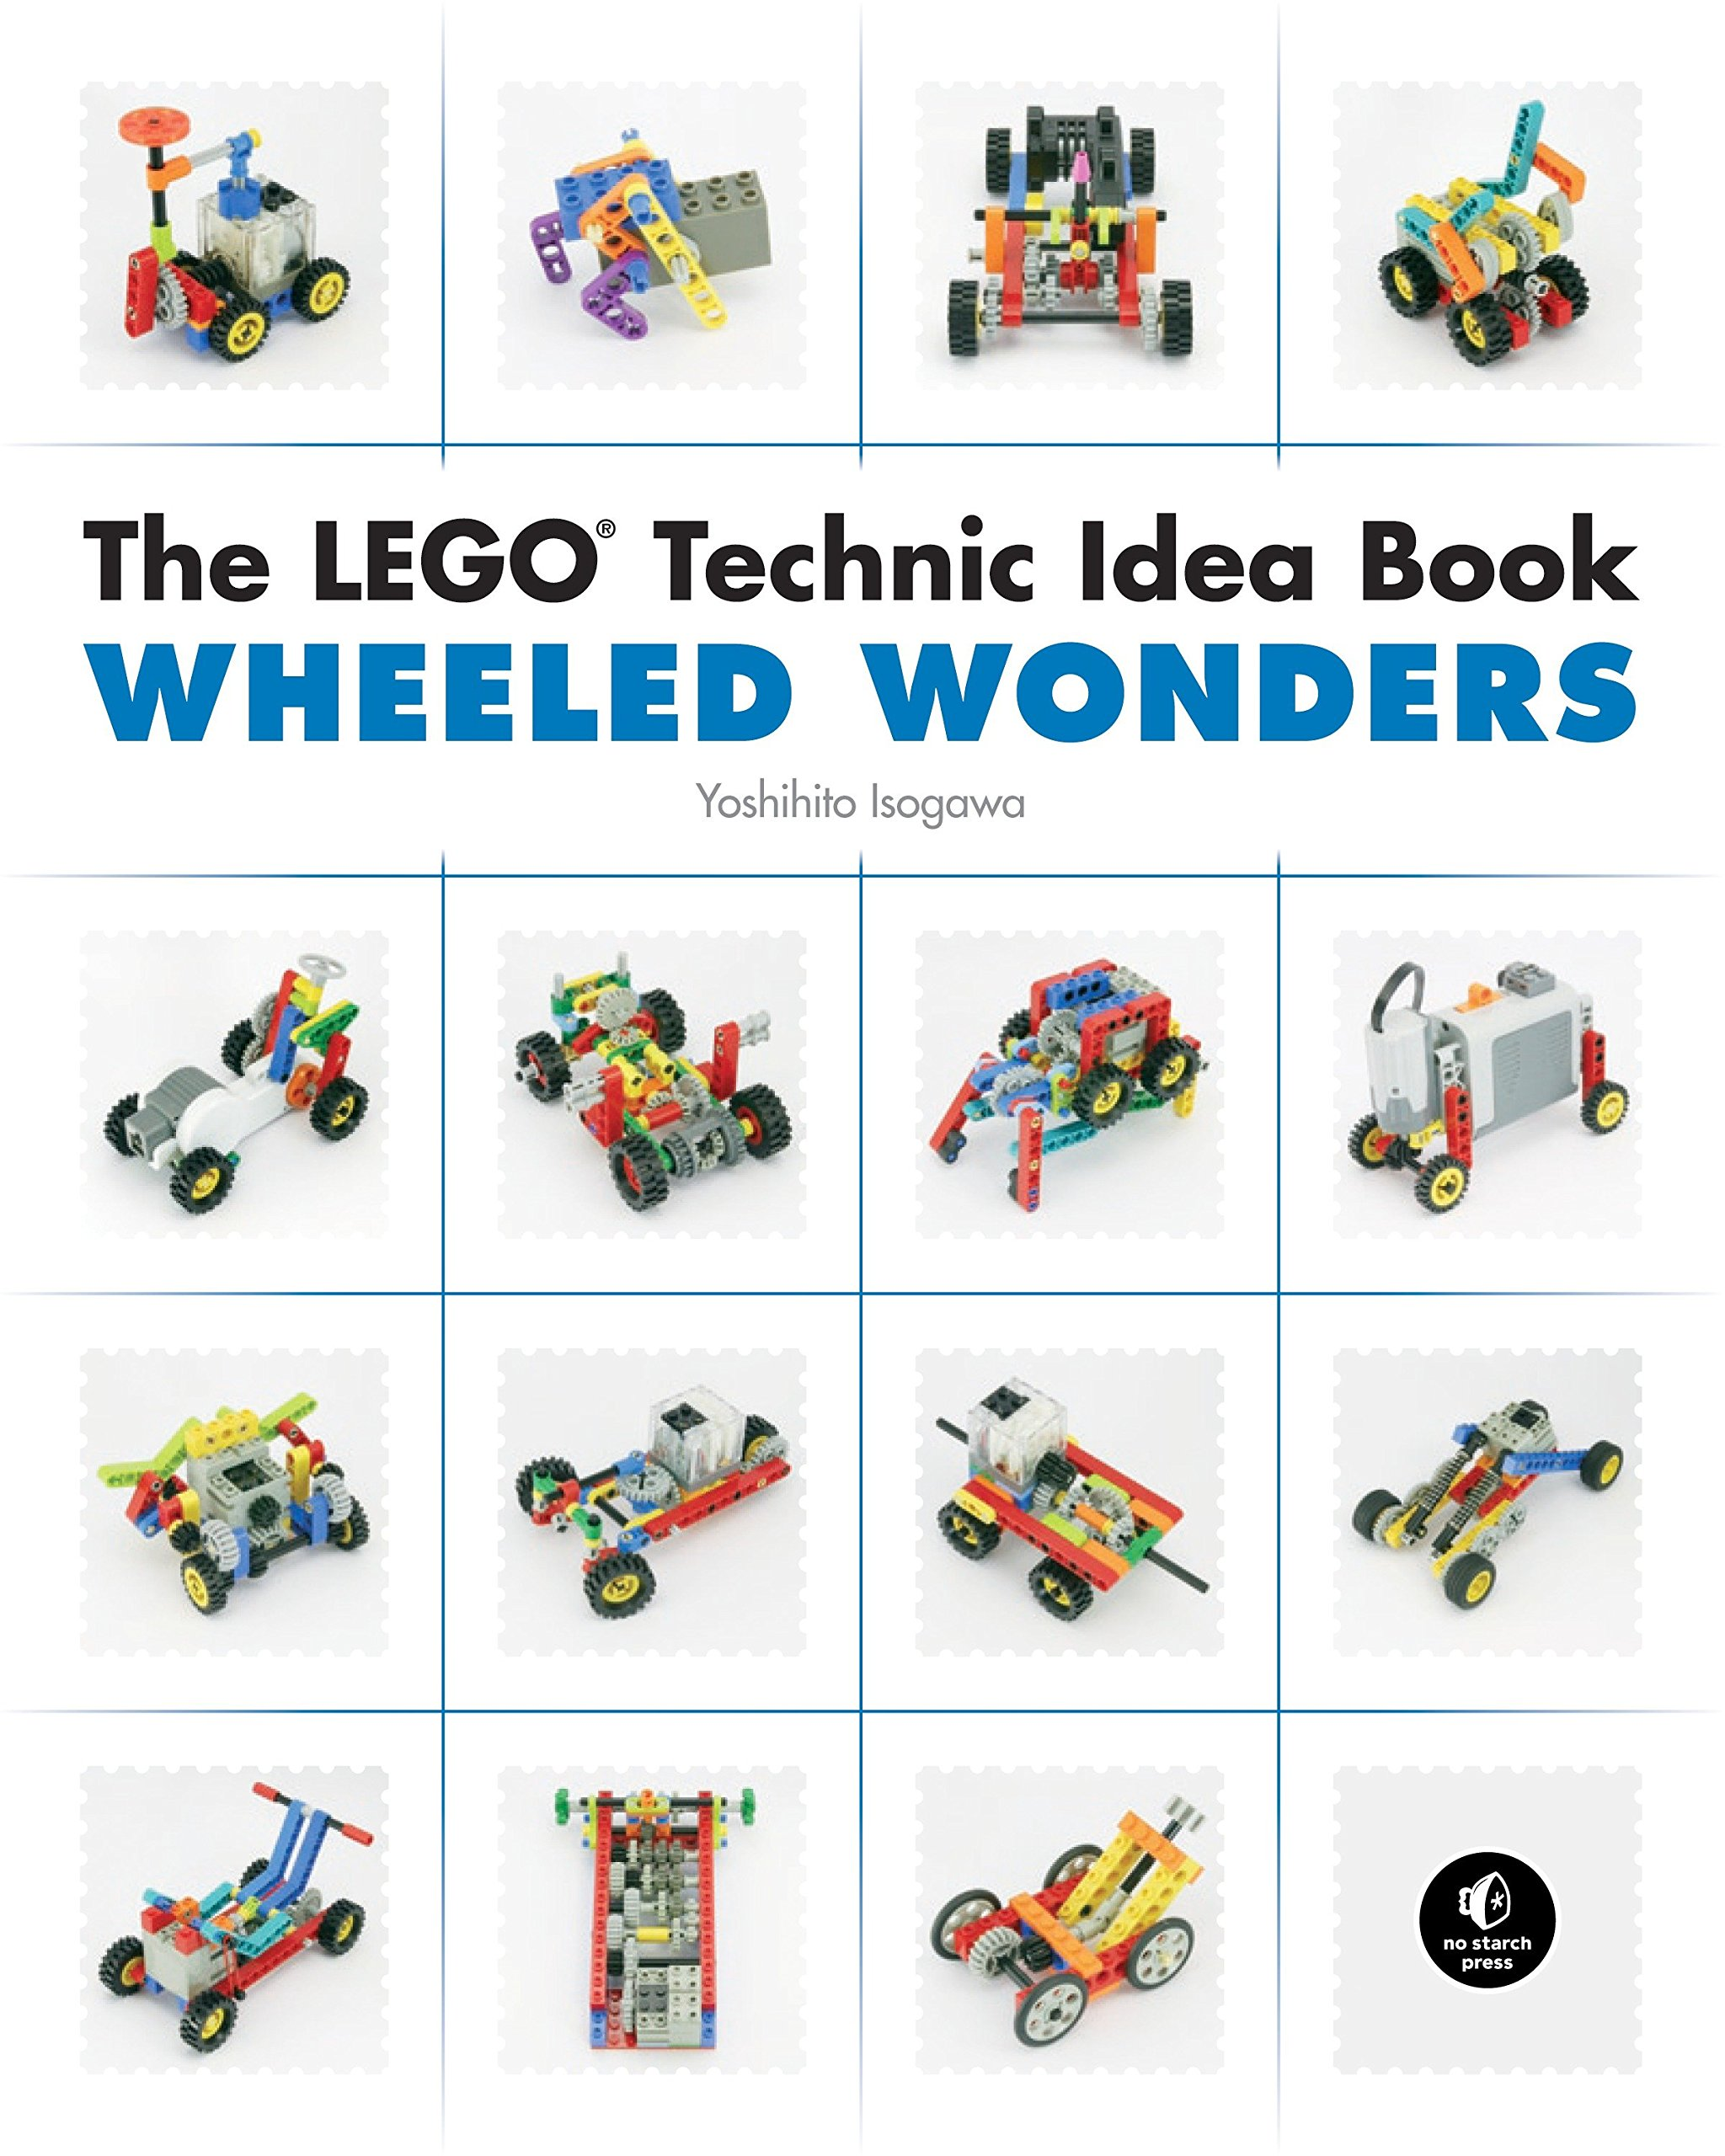 The LEGO Technic Idea Book  Wheeled Wonders